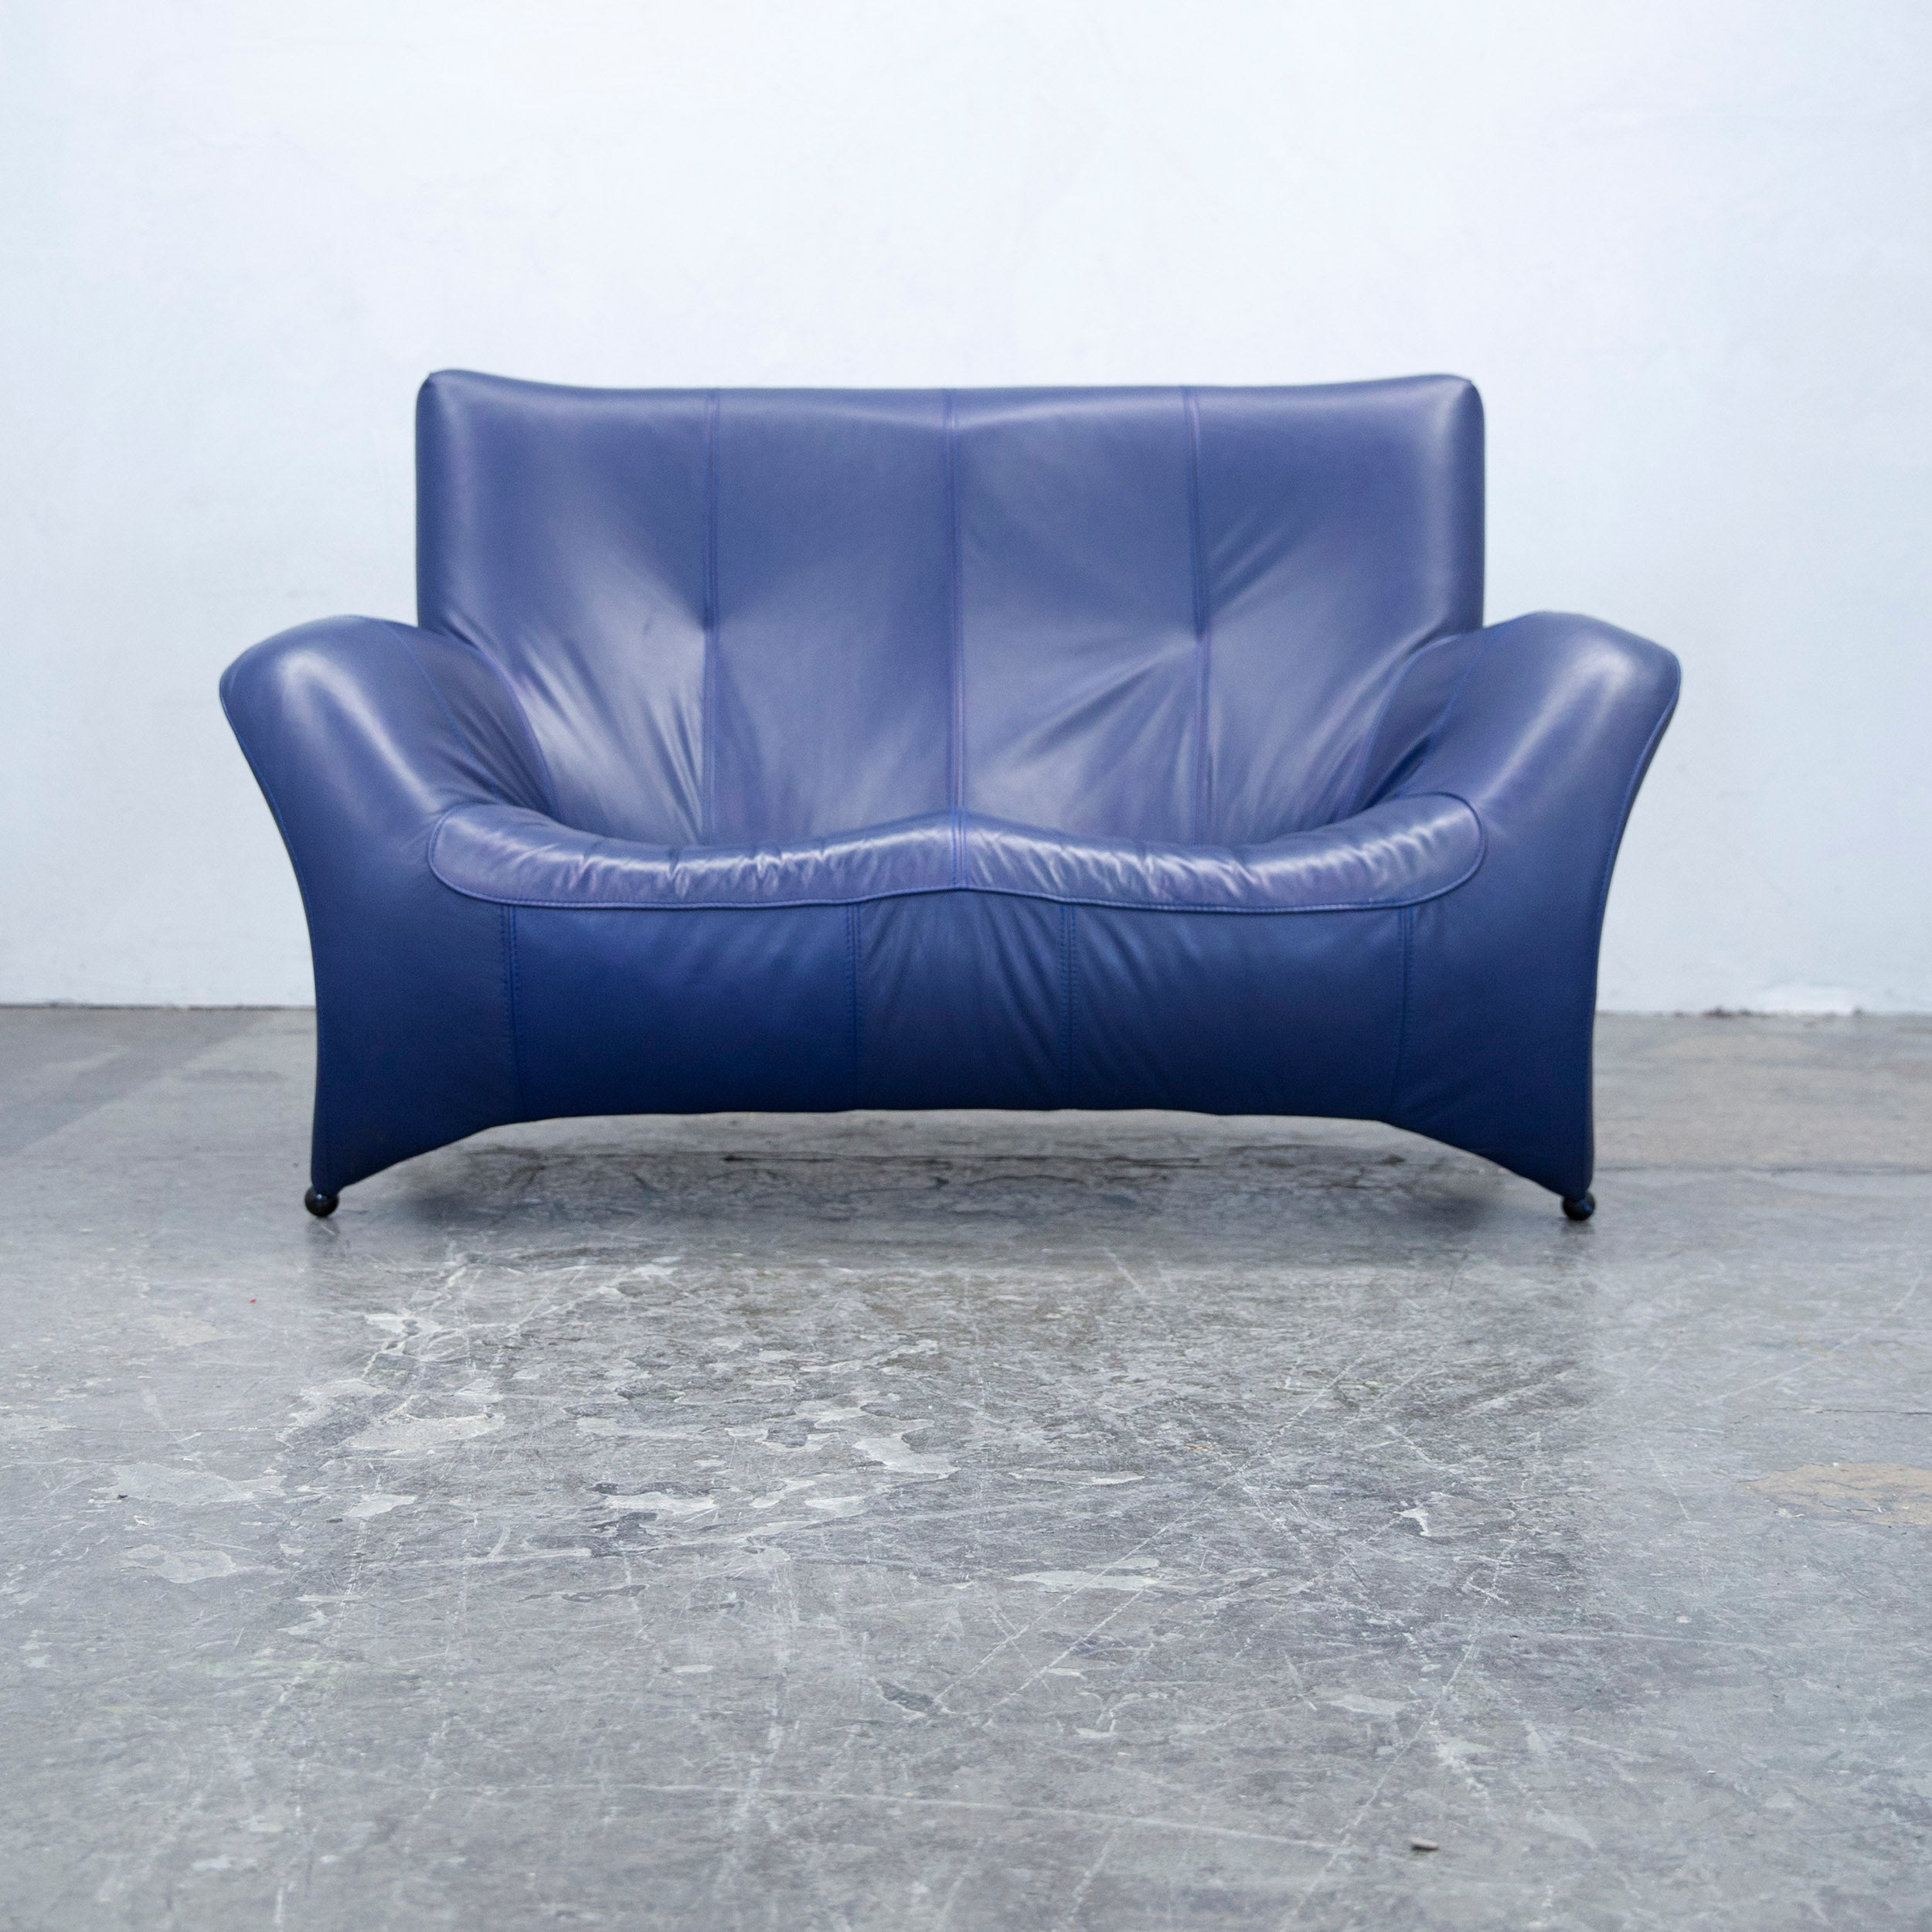 Designer Sofa Leather Blue Two Seat Couch Modern at 1stdibs